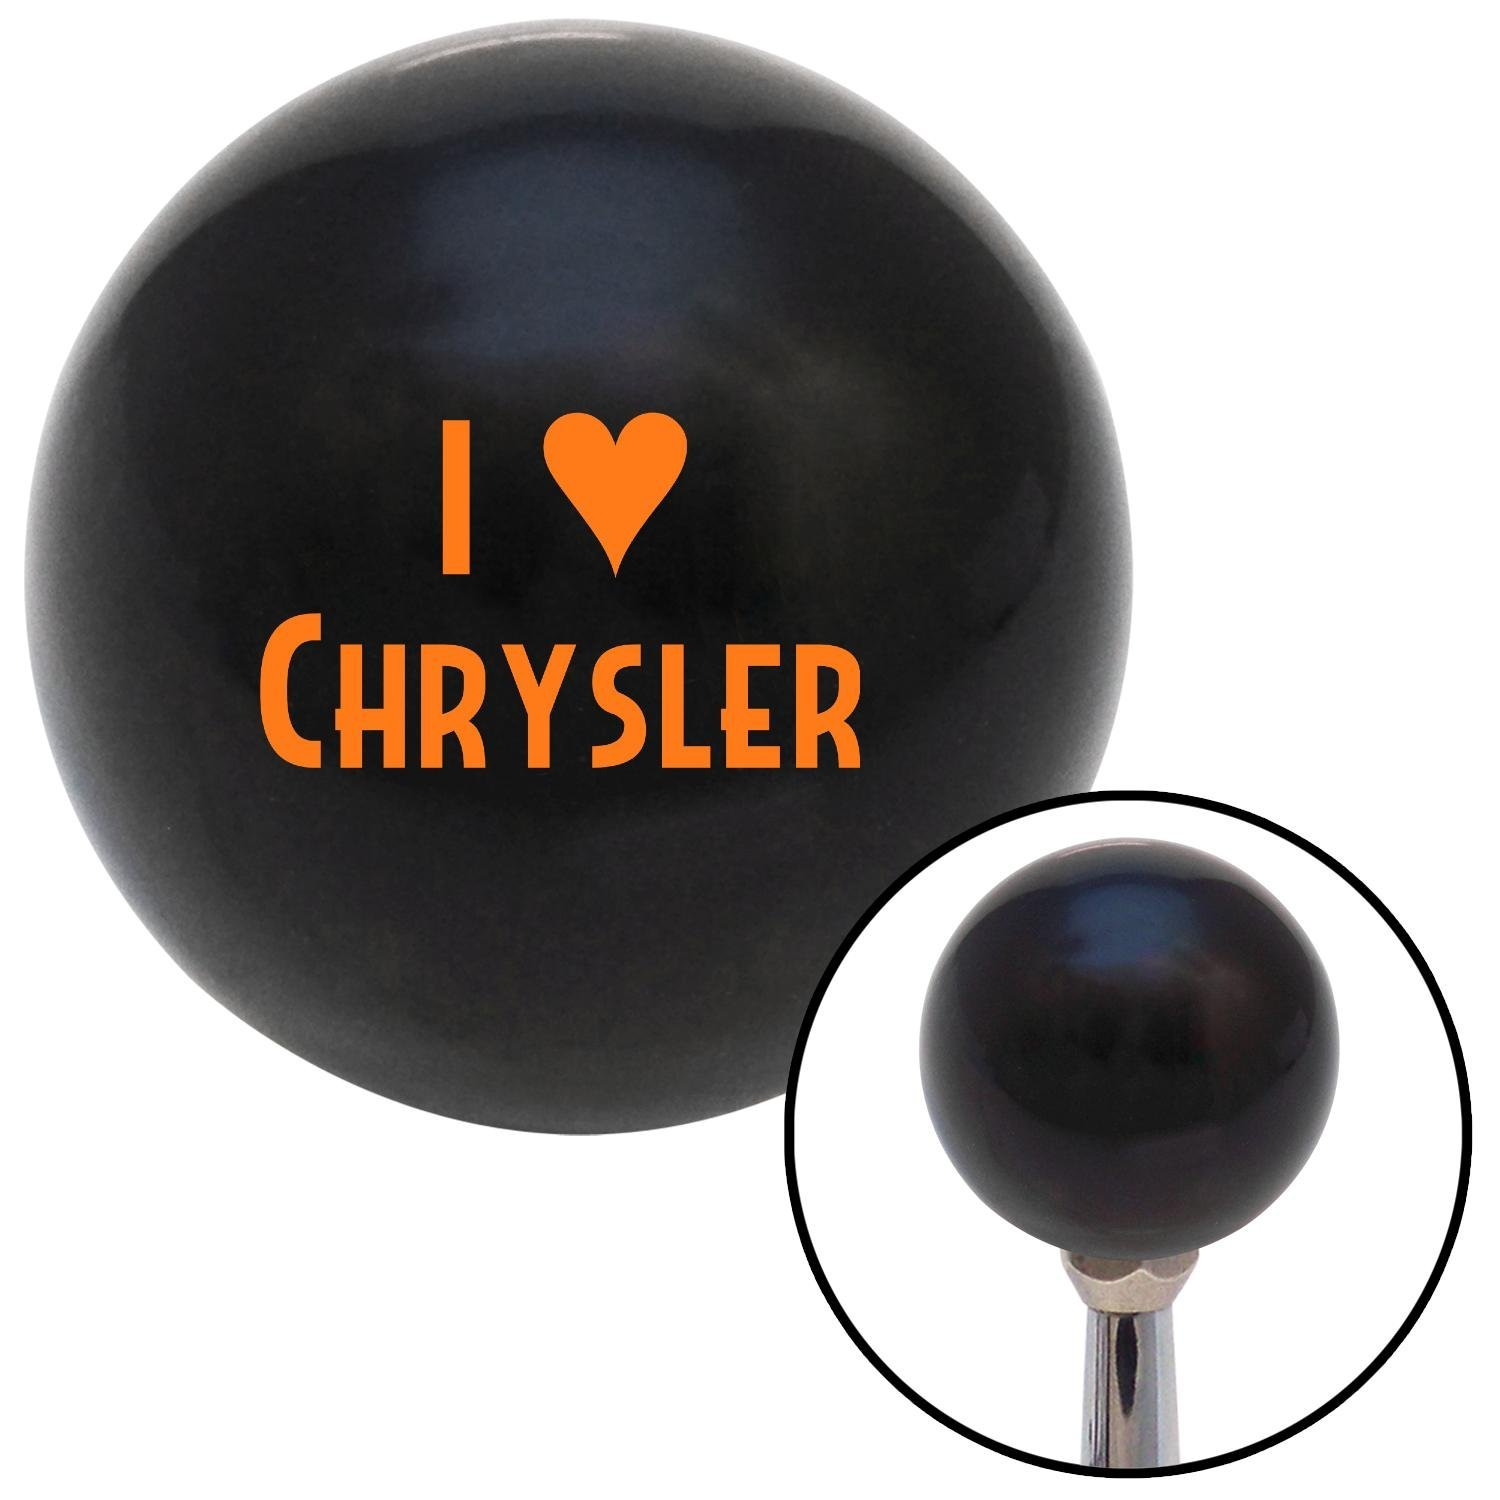 American Shifter 105602 Black Shift Knob with M16 x 1.5 Insert Orange I 3 Chrysler